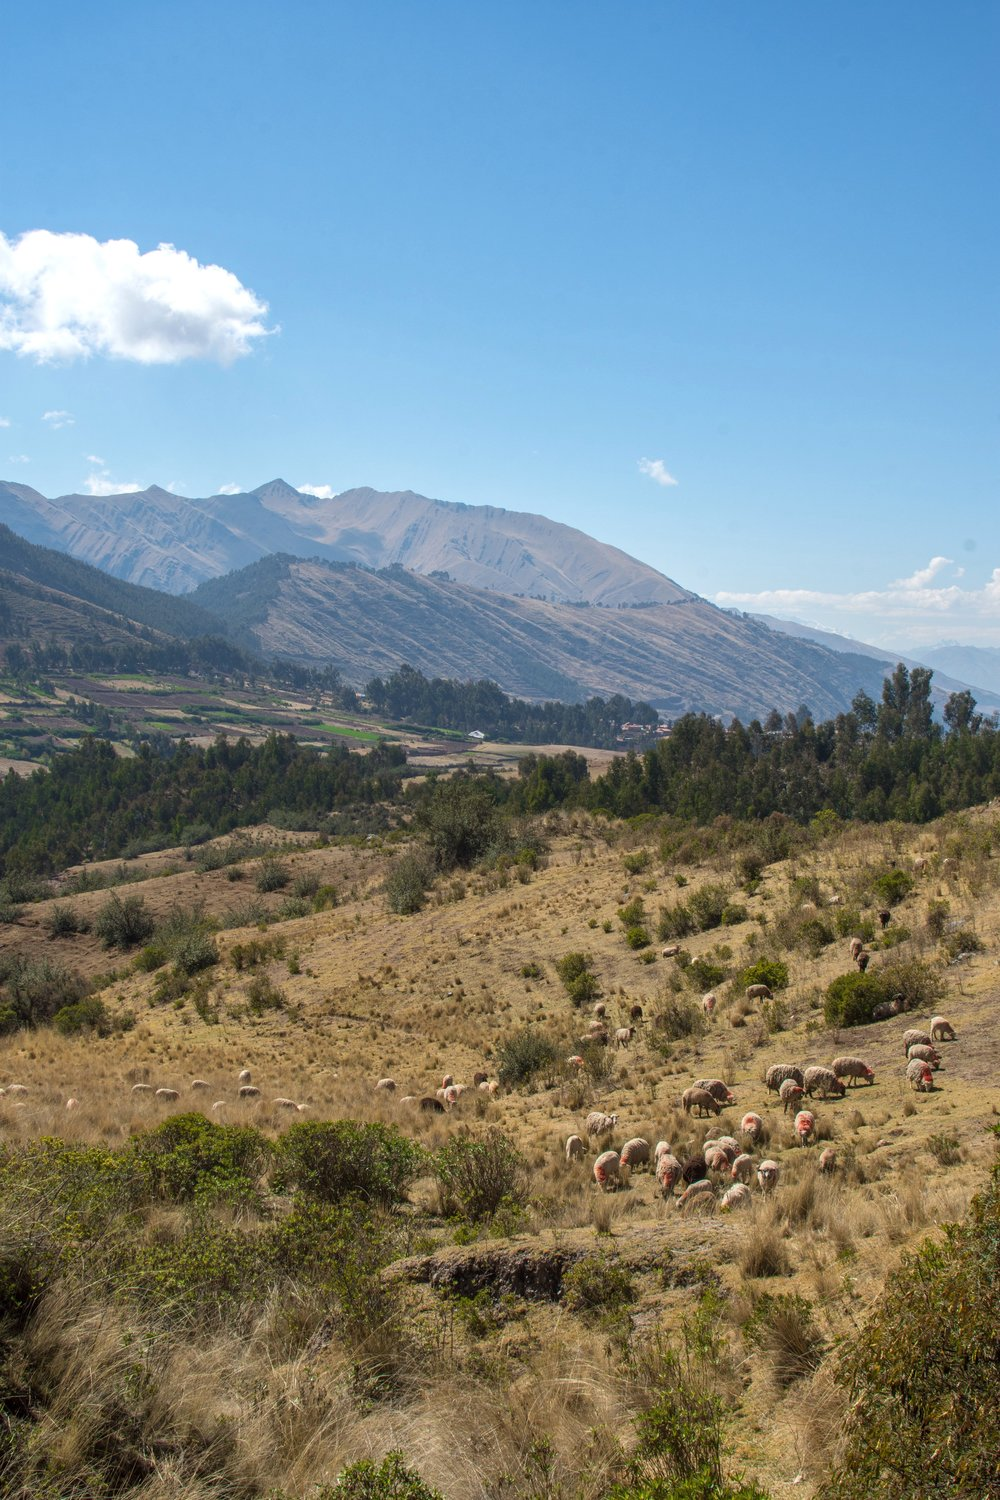 Sheep near Cusco